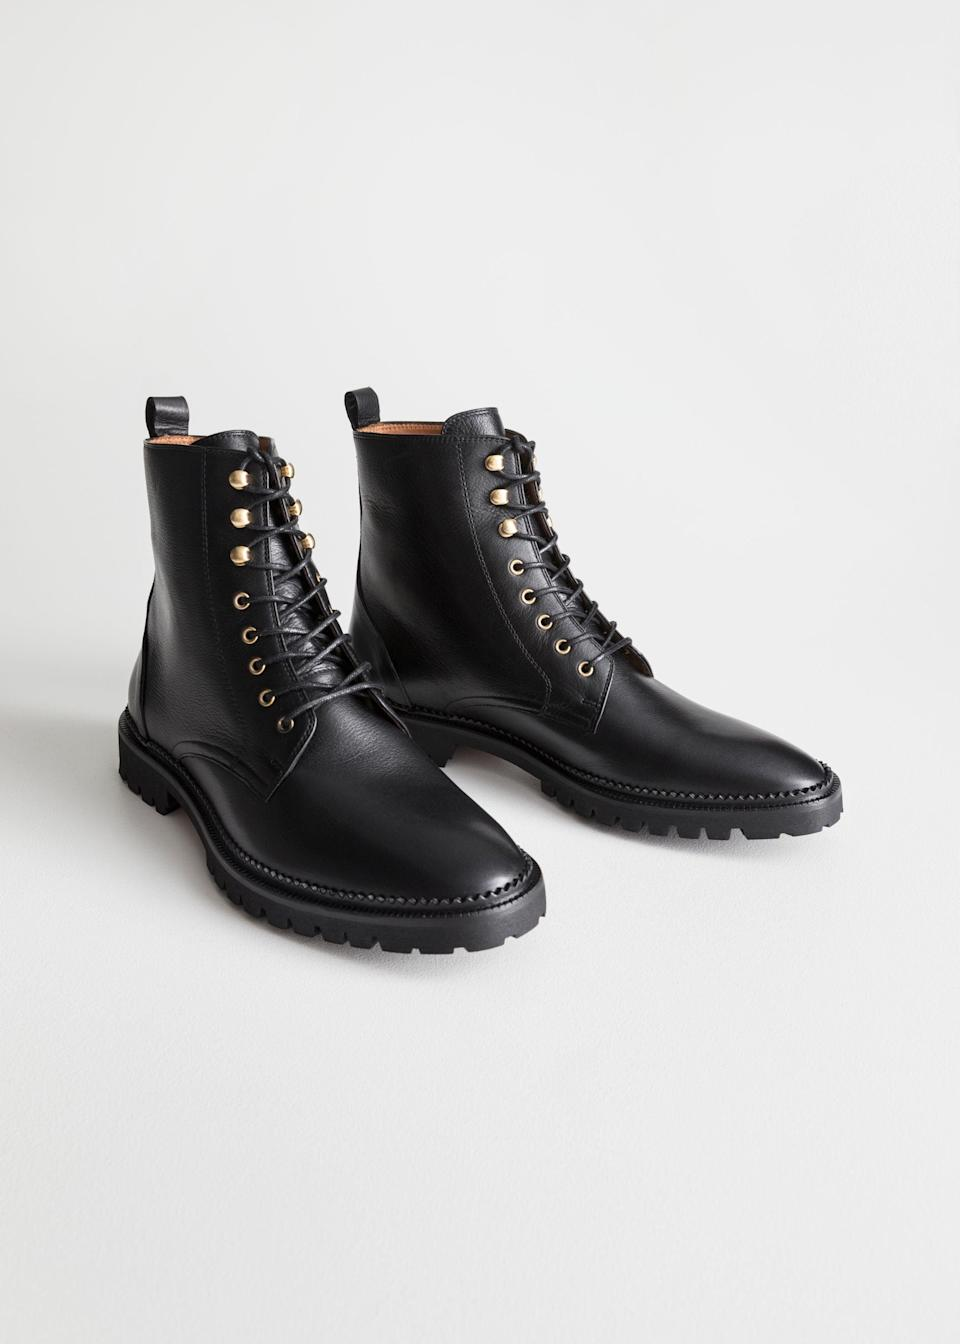 "<br><br><strong>& Other Stories</strong> Lace-Up Leather Boots, $, available at <a href=""https://go.skimresources.com/?id=30283X879131&url=https%3A%2F%2Fwww.stories.com%2Fen_usd%2Fshoes%2Fboots%2Fankleboots%2Fproduct.lace-up-leather-boots-black.0558709001.html"" rel=""nofollow noopener"" target=""_blank"" data-ylk=""slk:& Other Stories"" class=""link rapid-noclick-resp"">& Other Stories</a>"